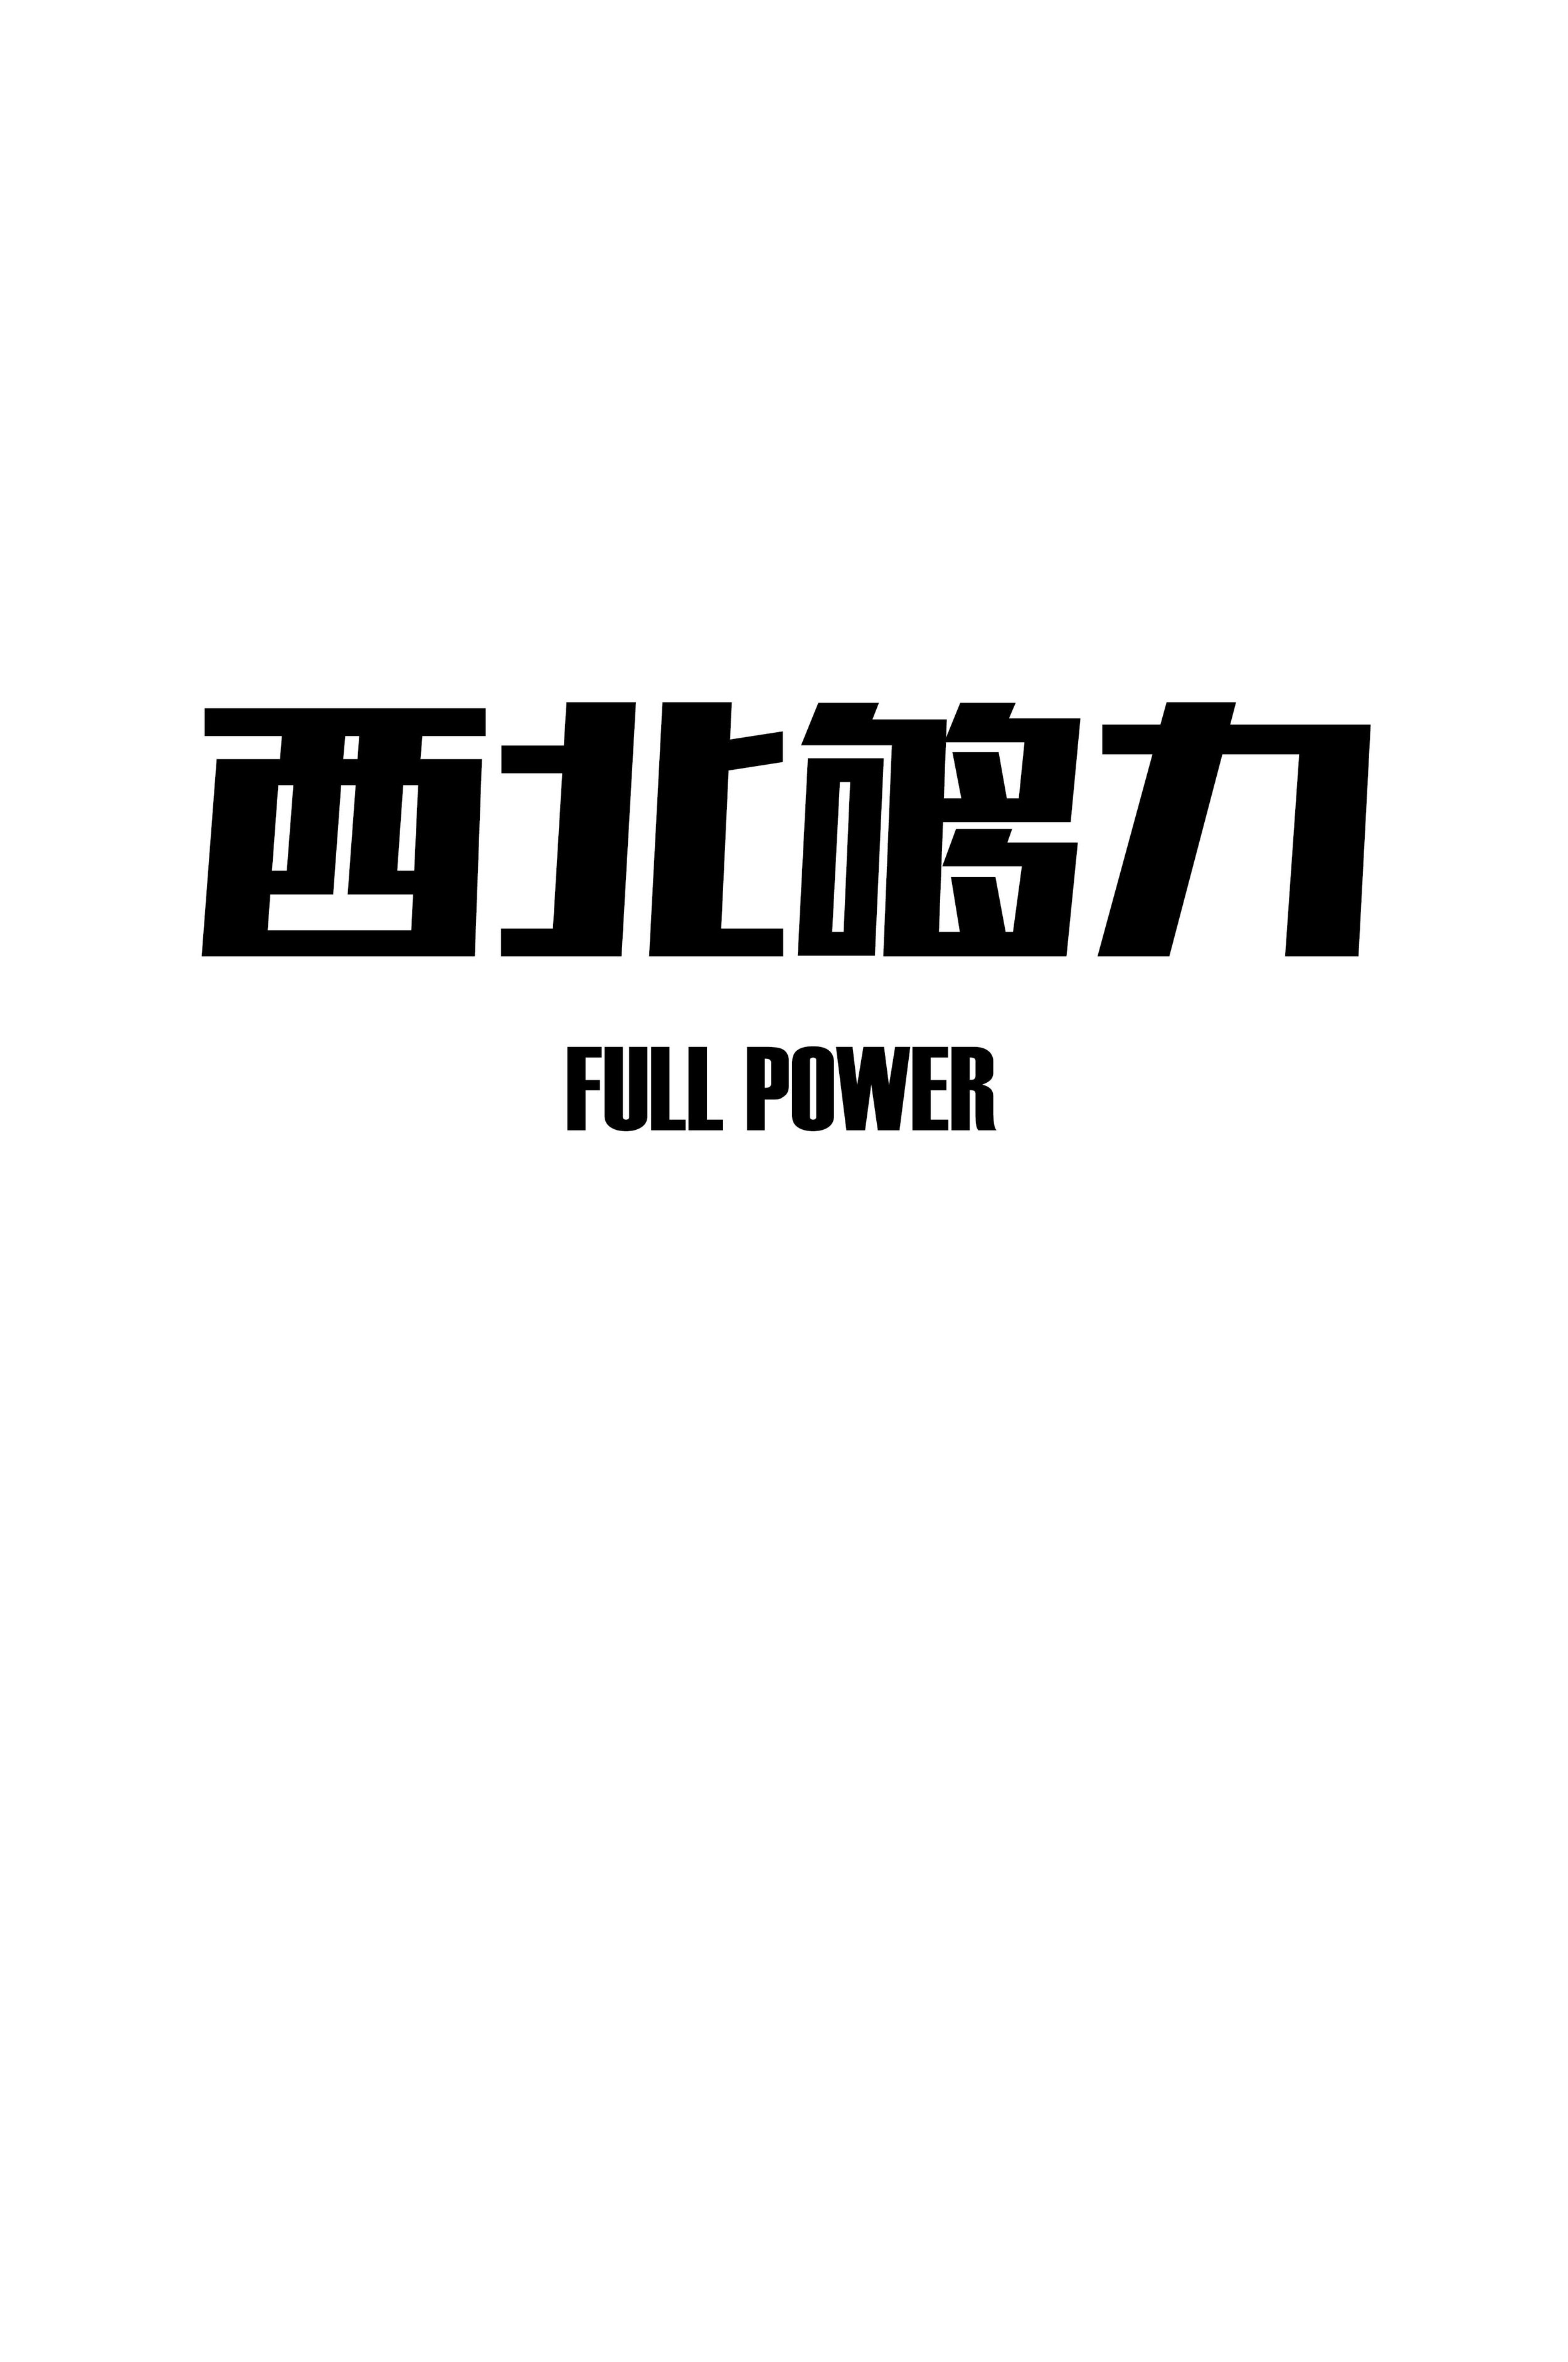 15.1.2 Chinese Full Power (light background).jpg